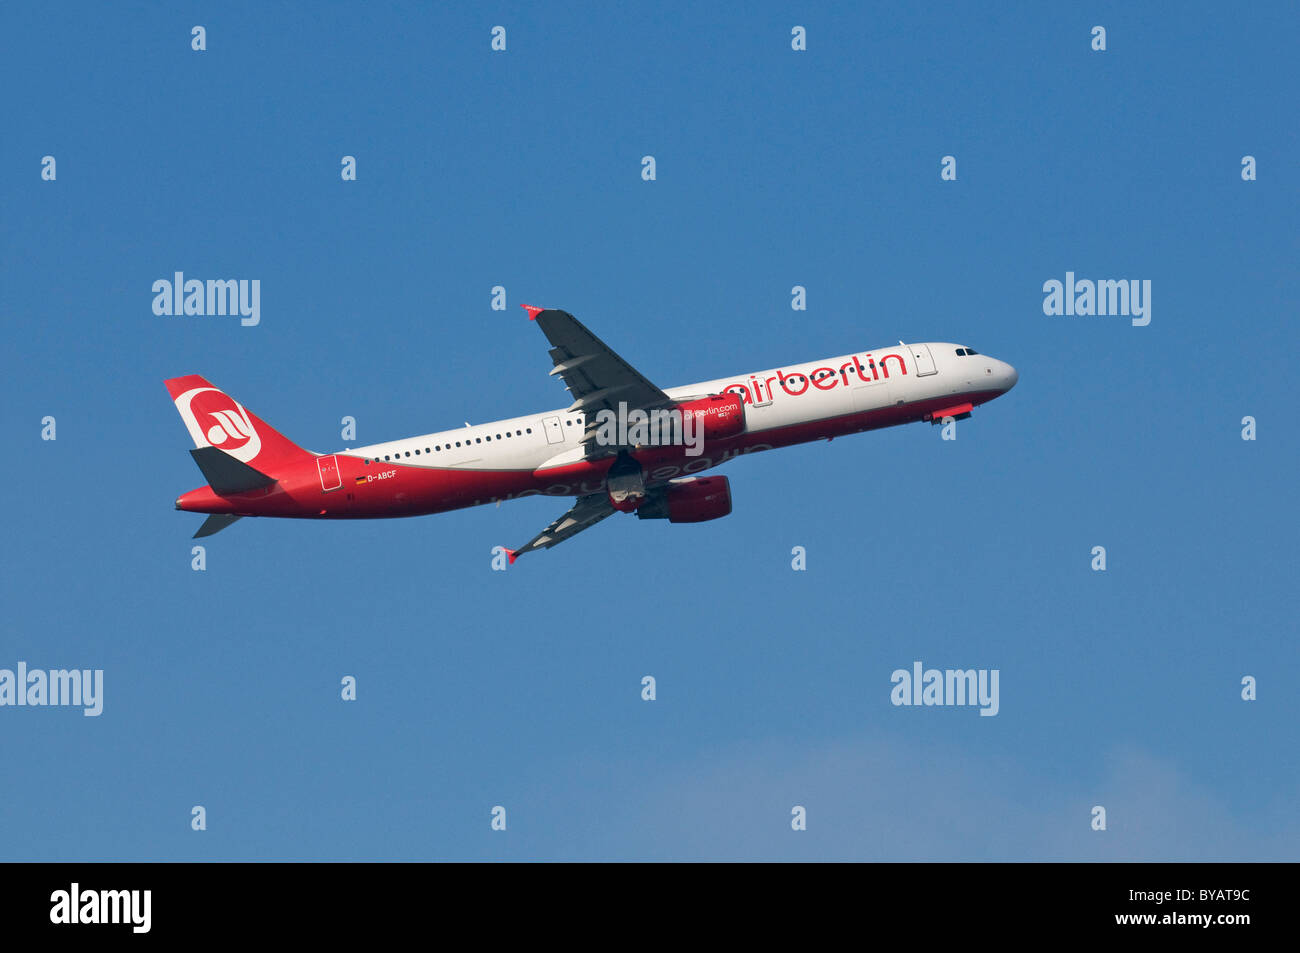 Airbus A321 of airline Airberlin after take-off with landing gear doors closing - Stock Image